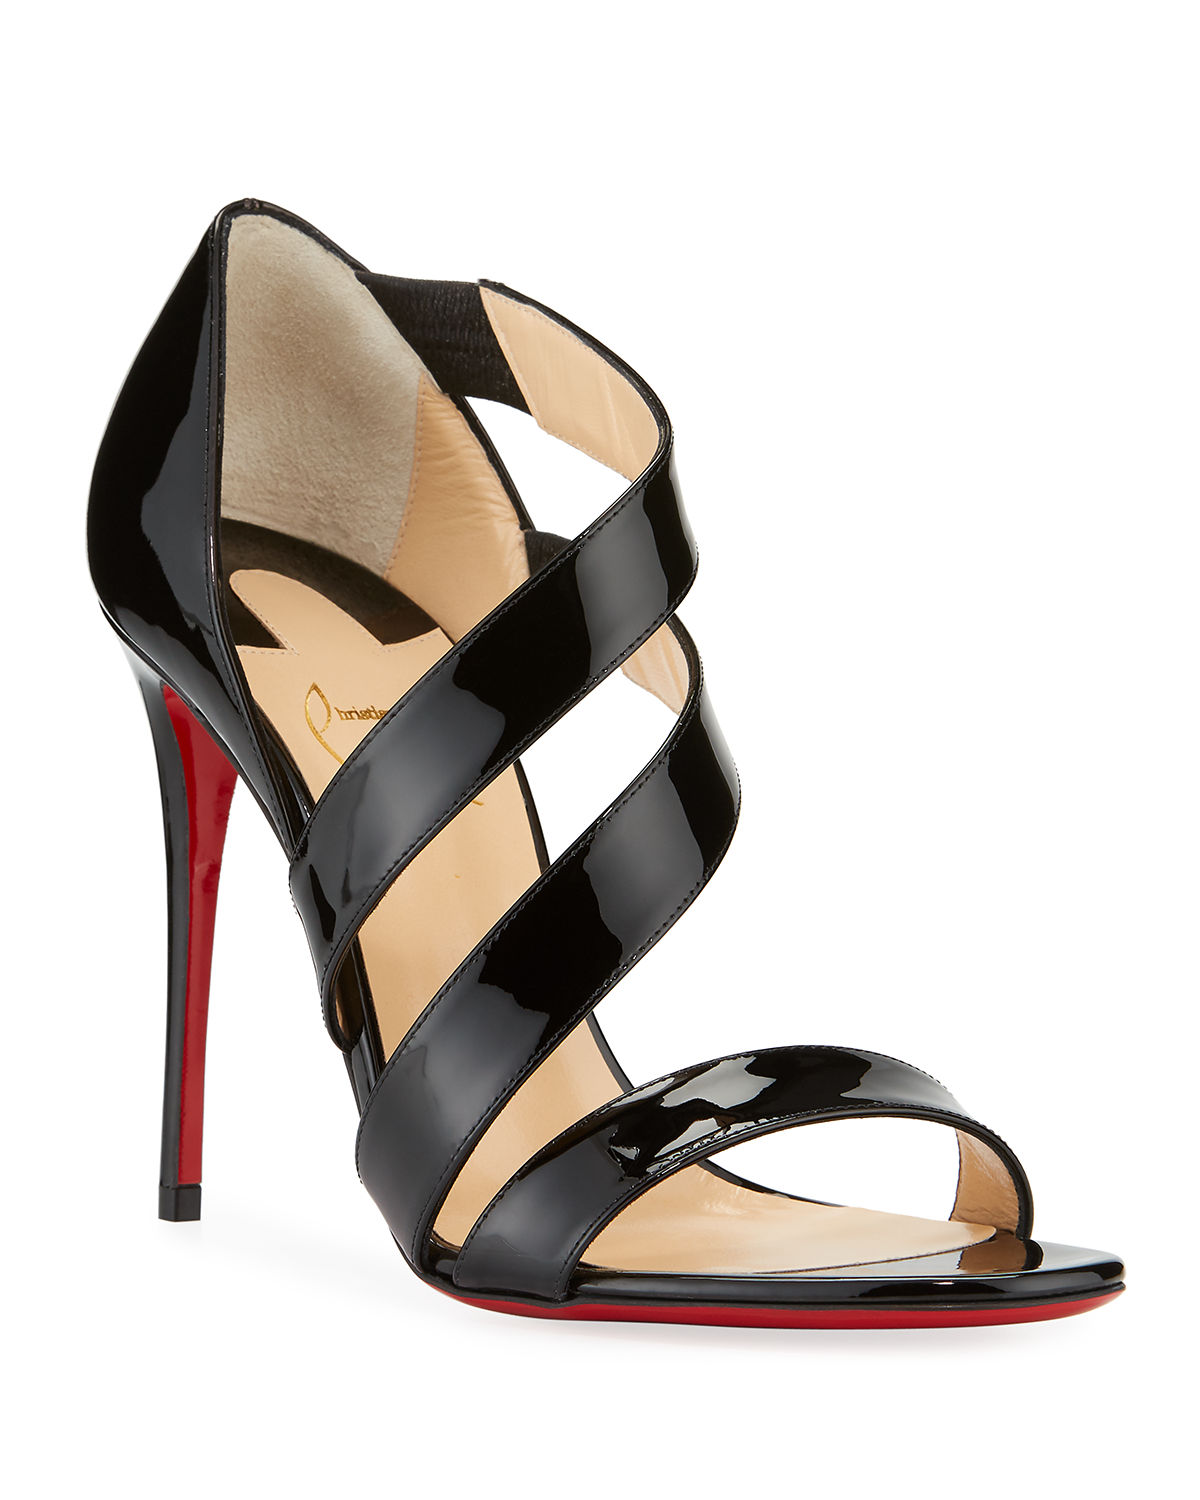 425d0a244198 Christian Louboutin World Copine Red Sole Pumps